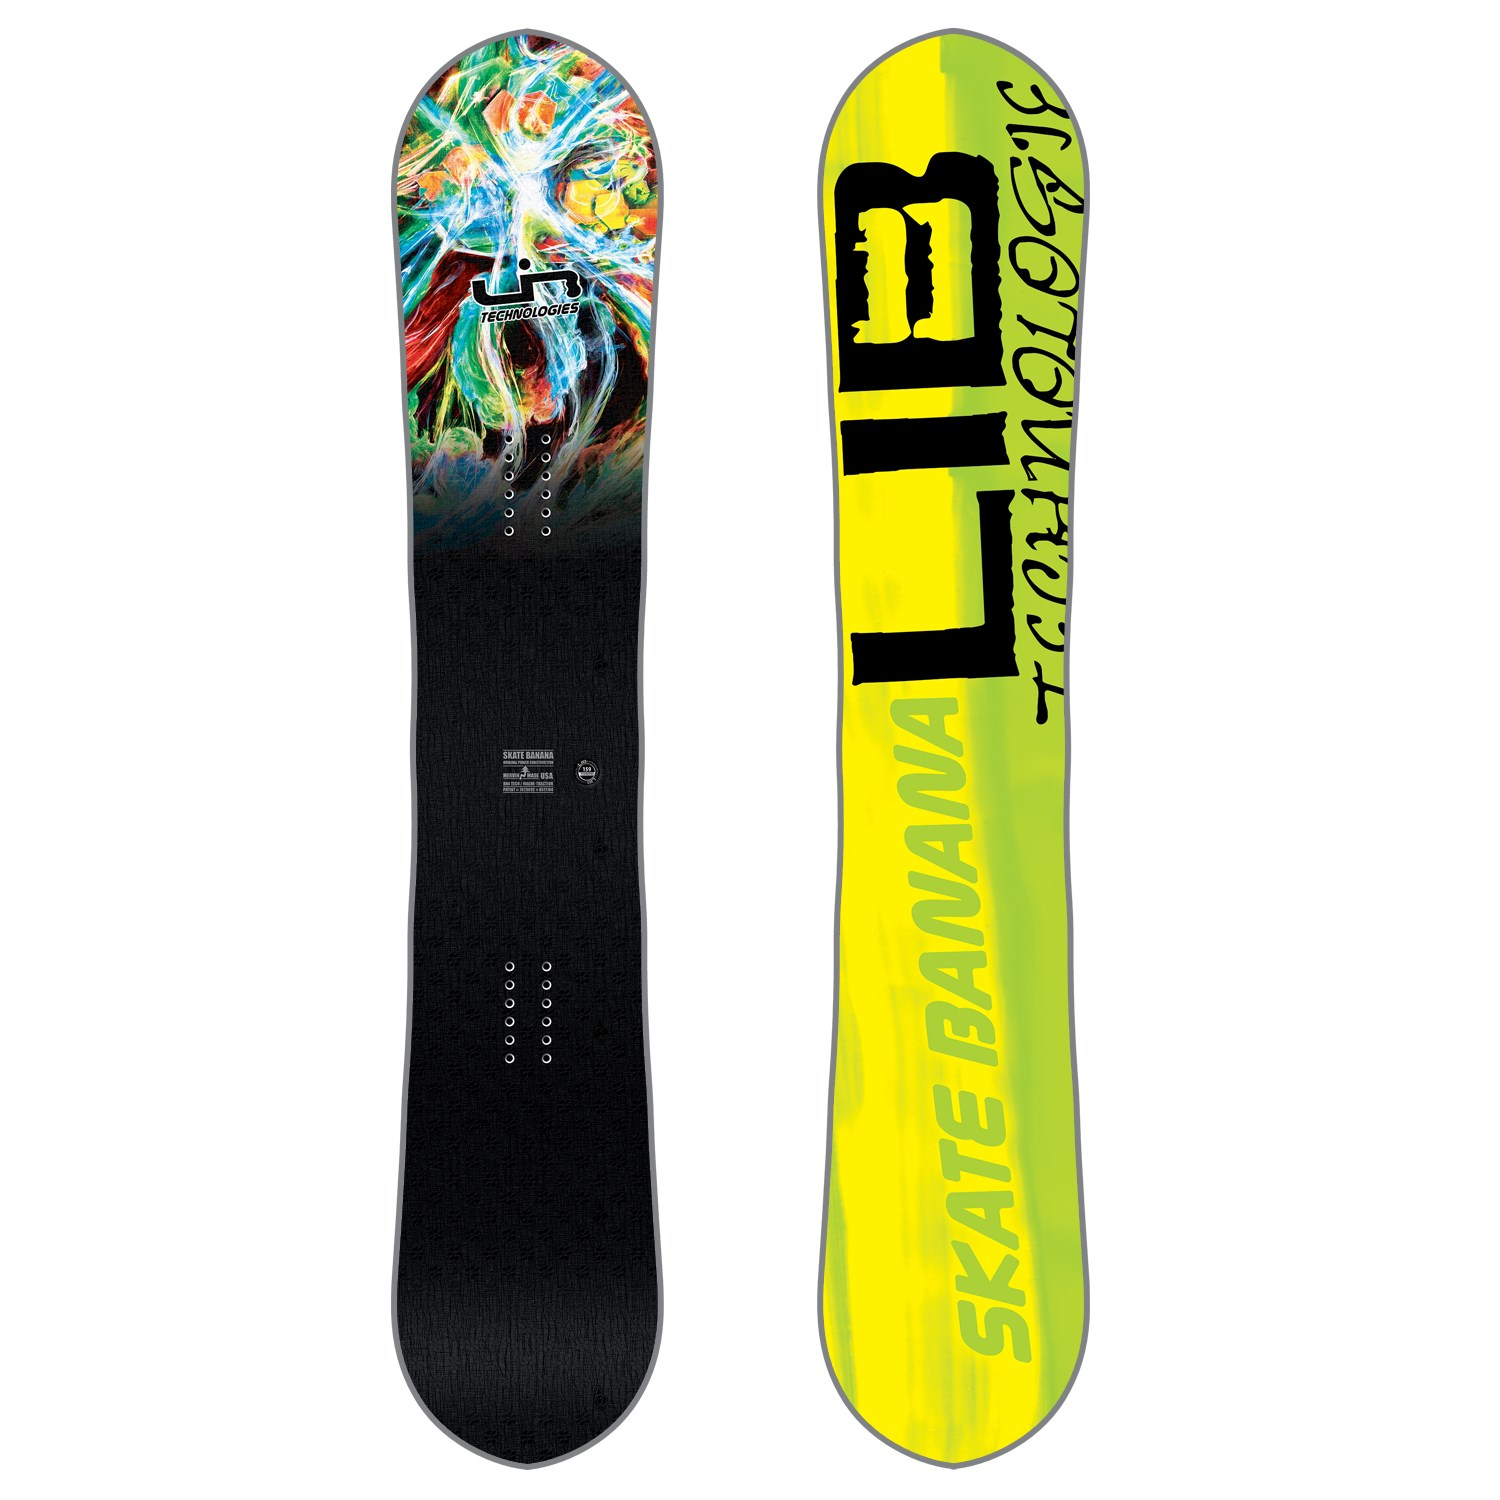 Medium image of lib tech skate banana btx snowboard 2018